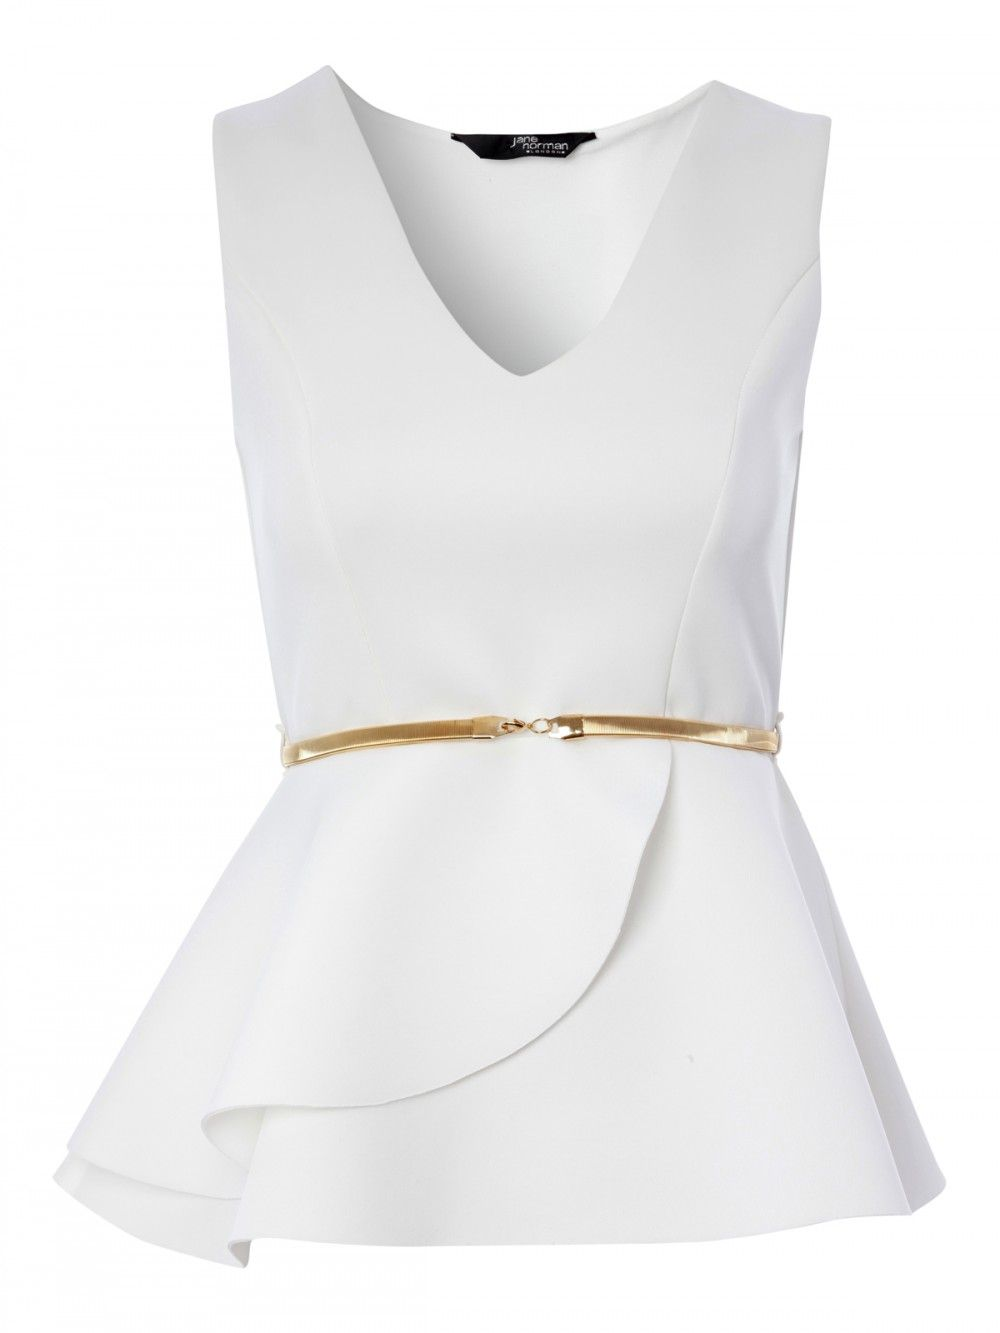 White is still looking so right for this season. This sleek peplum ...